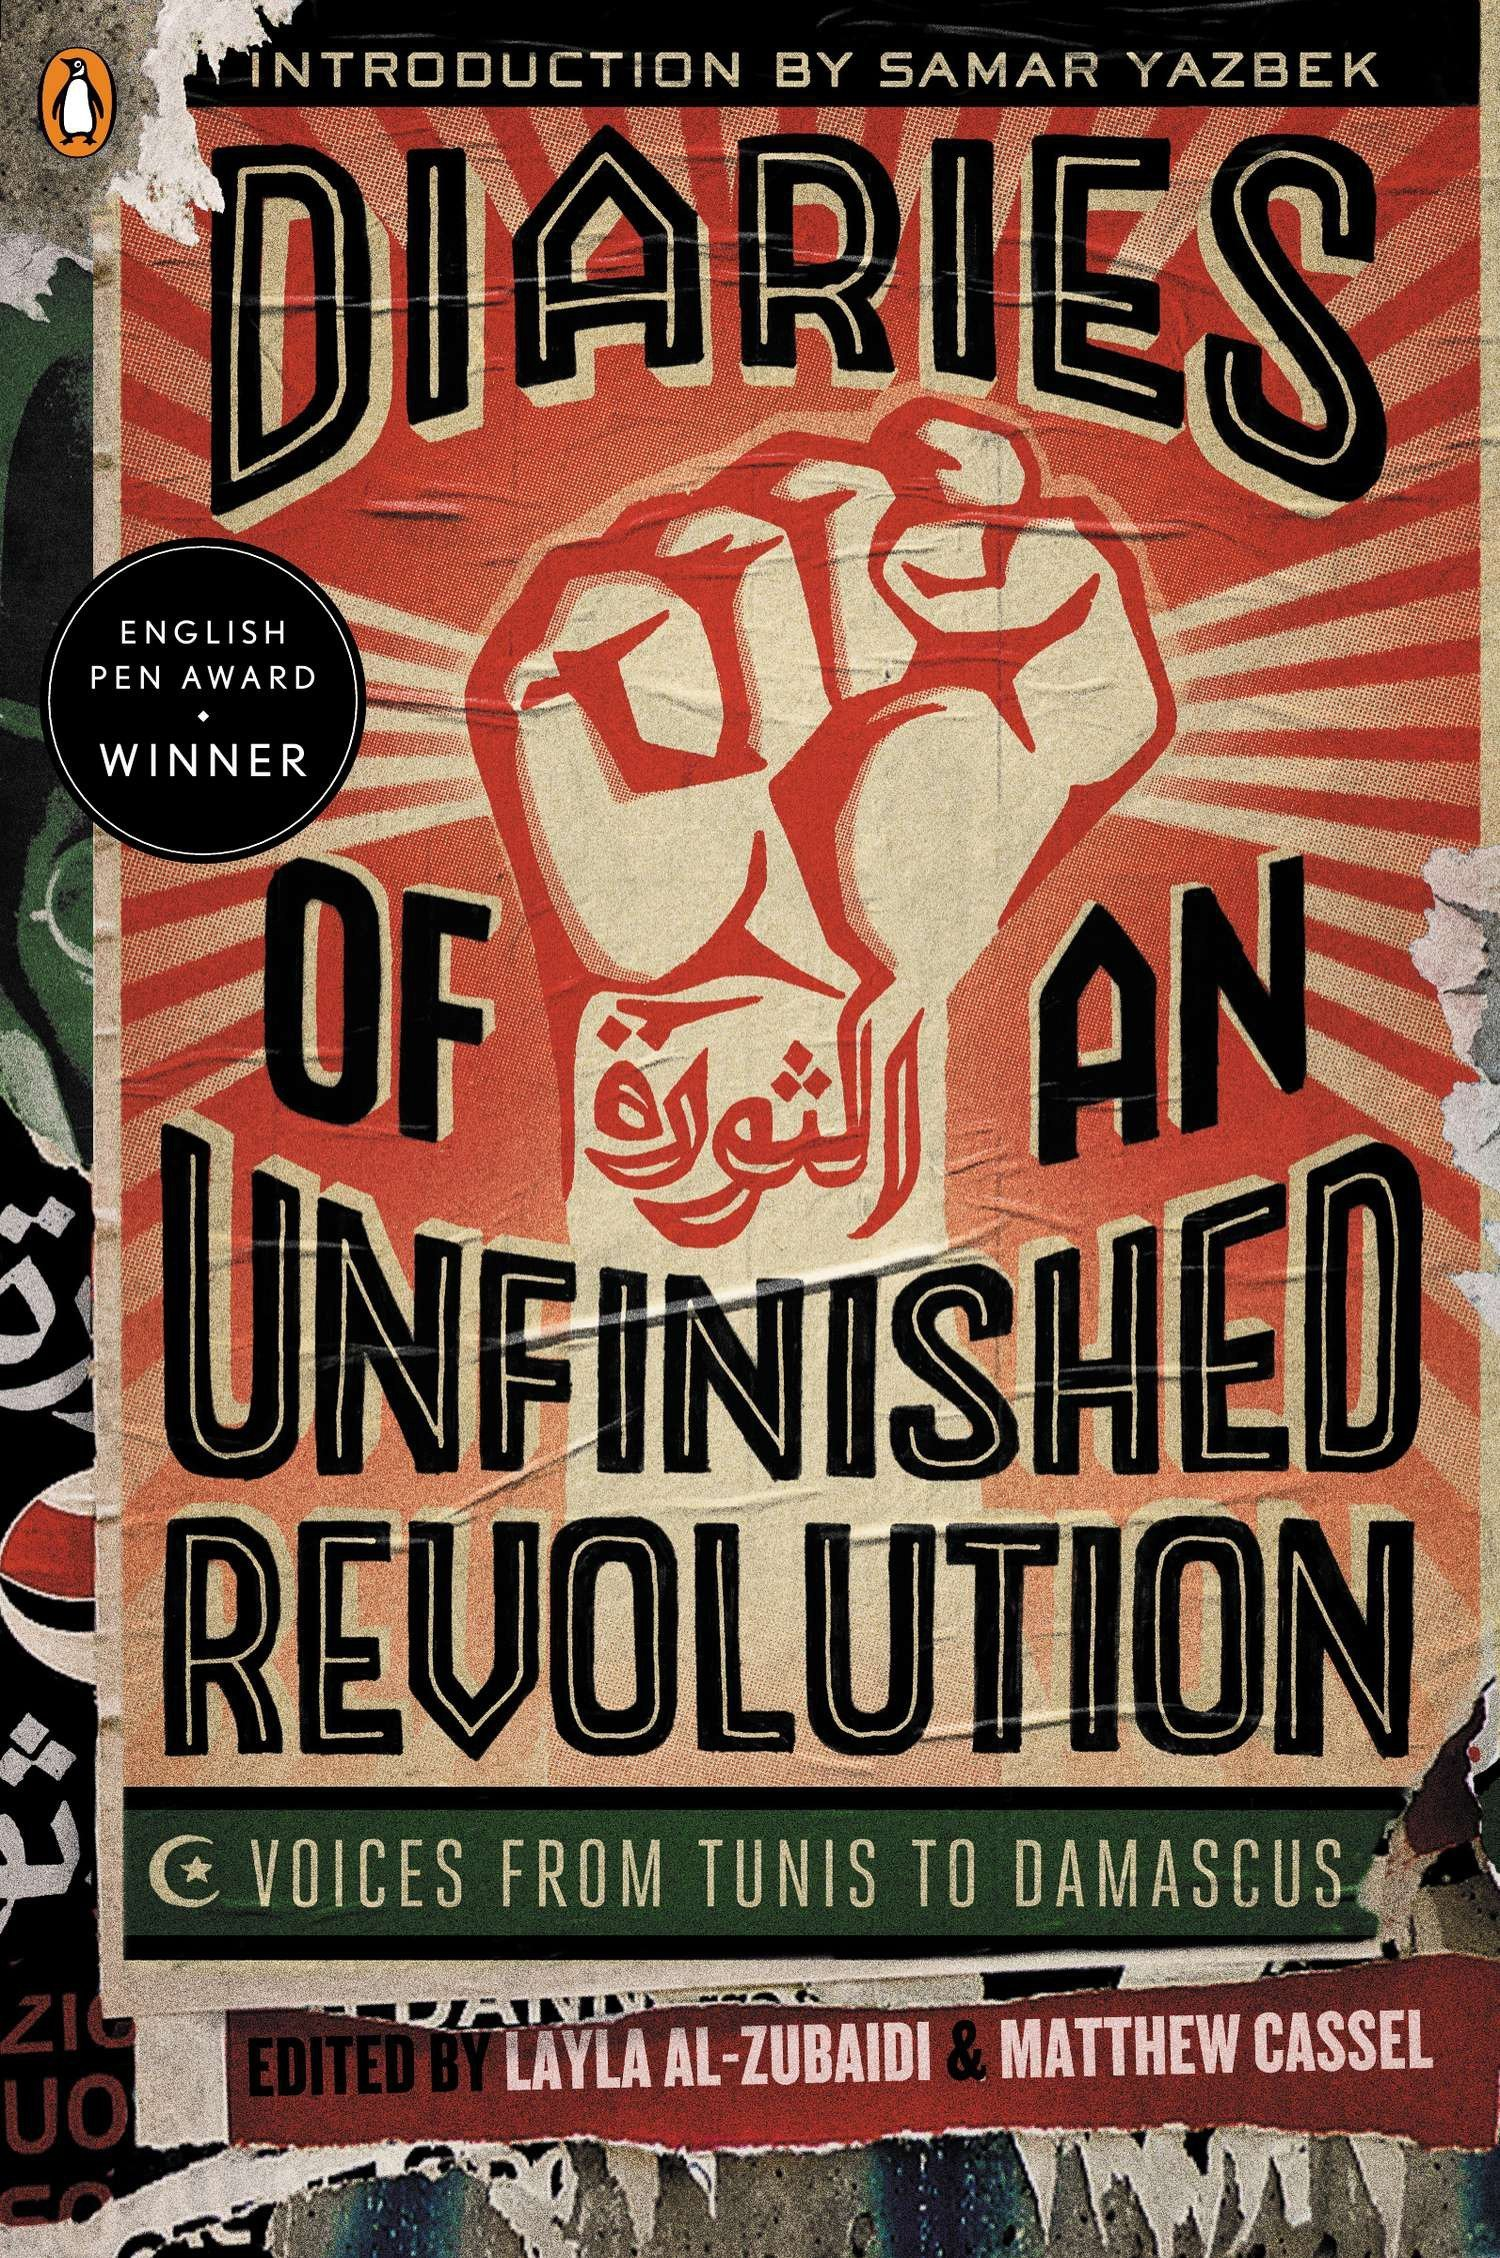 Diaries of an Unfinished Revolution: Voices from Tunis to Damascus pdf